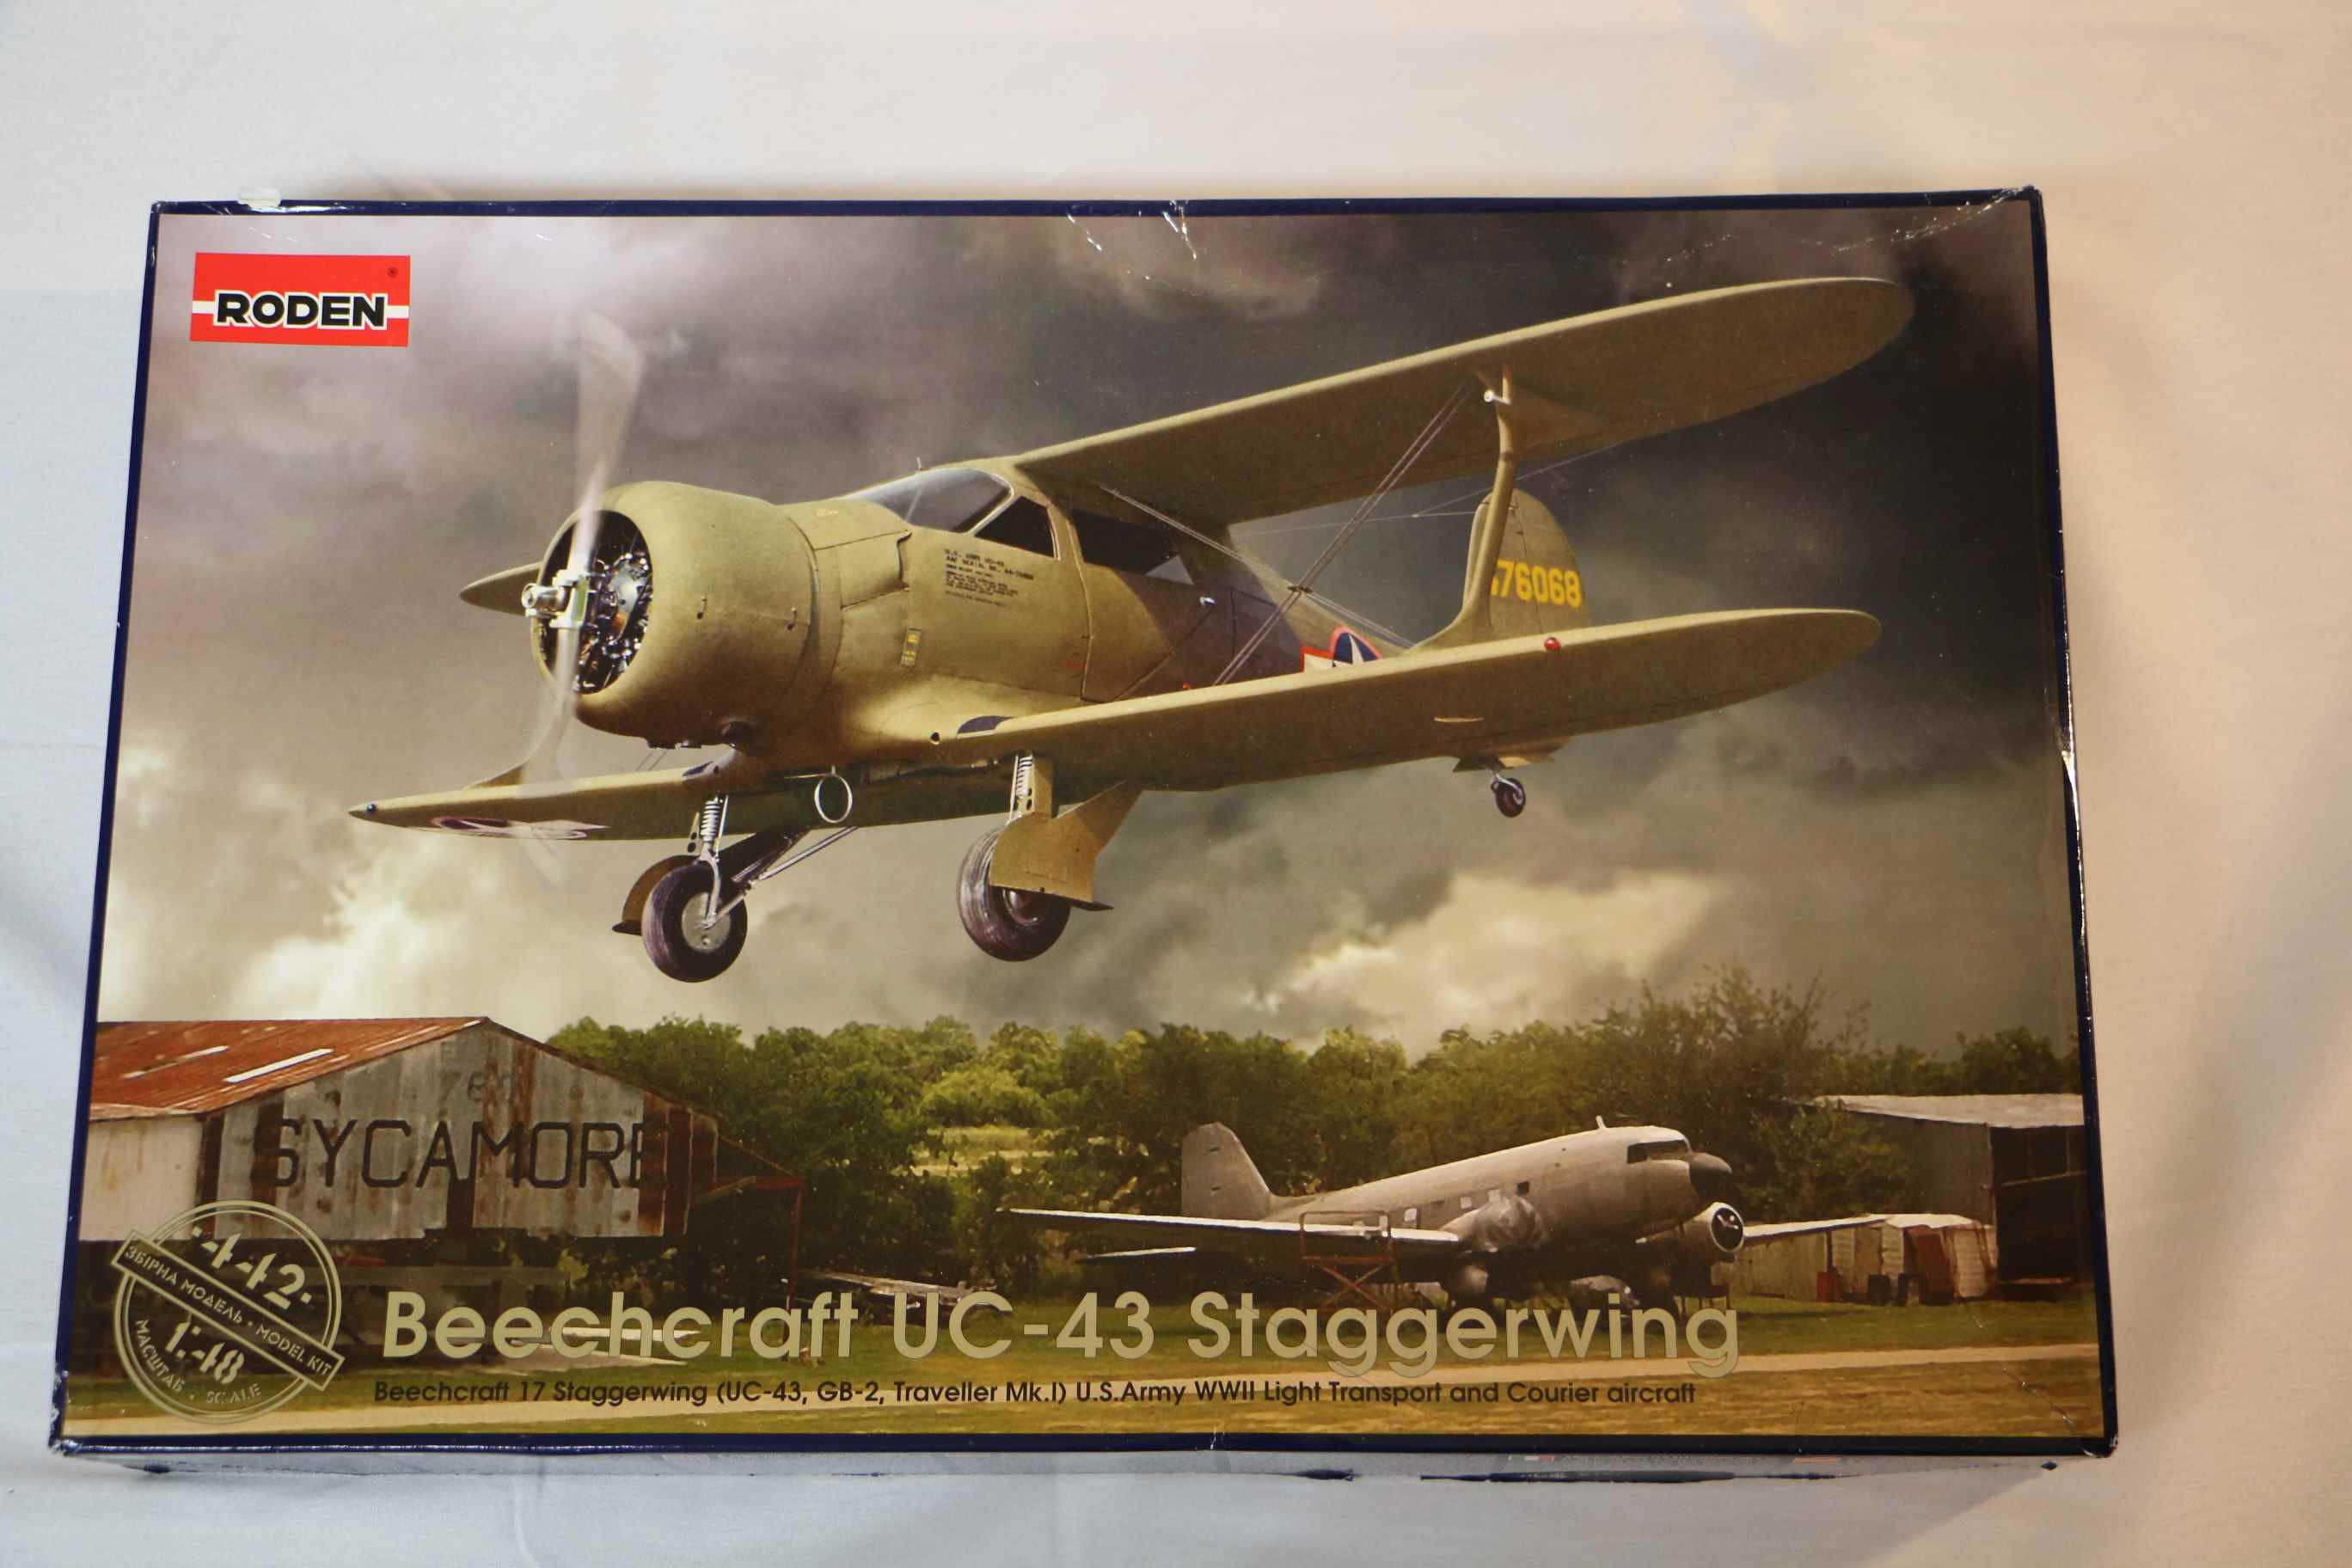 ROD442 - Roden 1/48 Beechcraft UC-43 Staggerwing